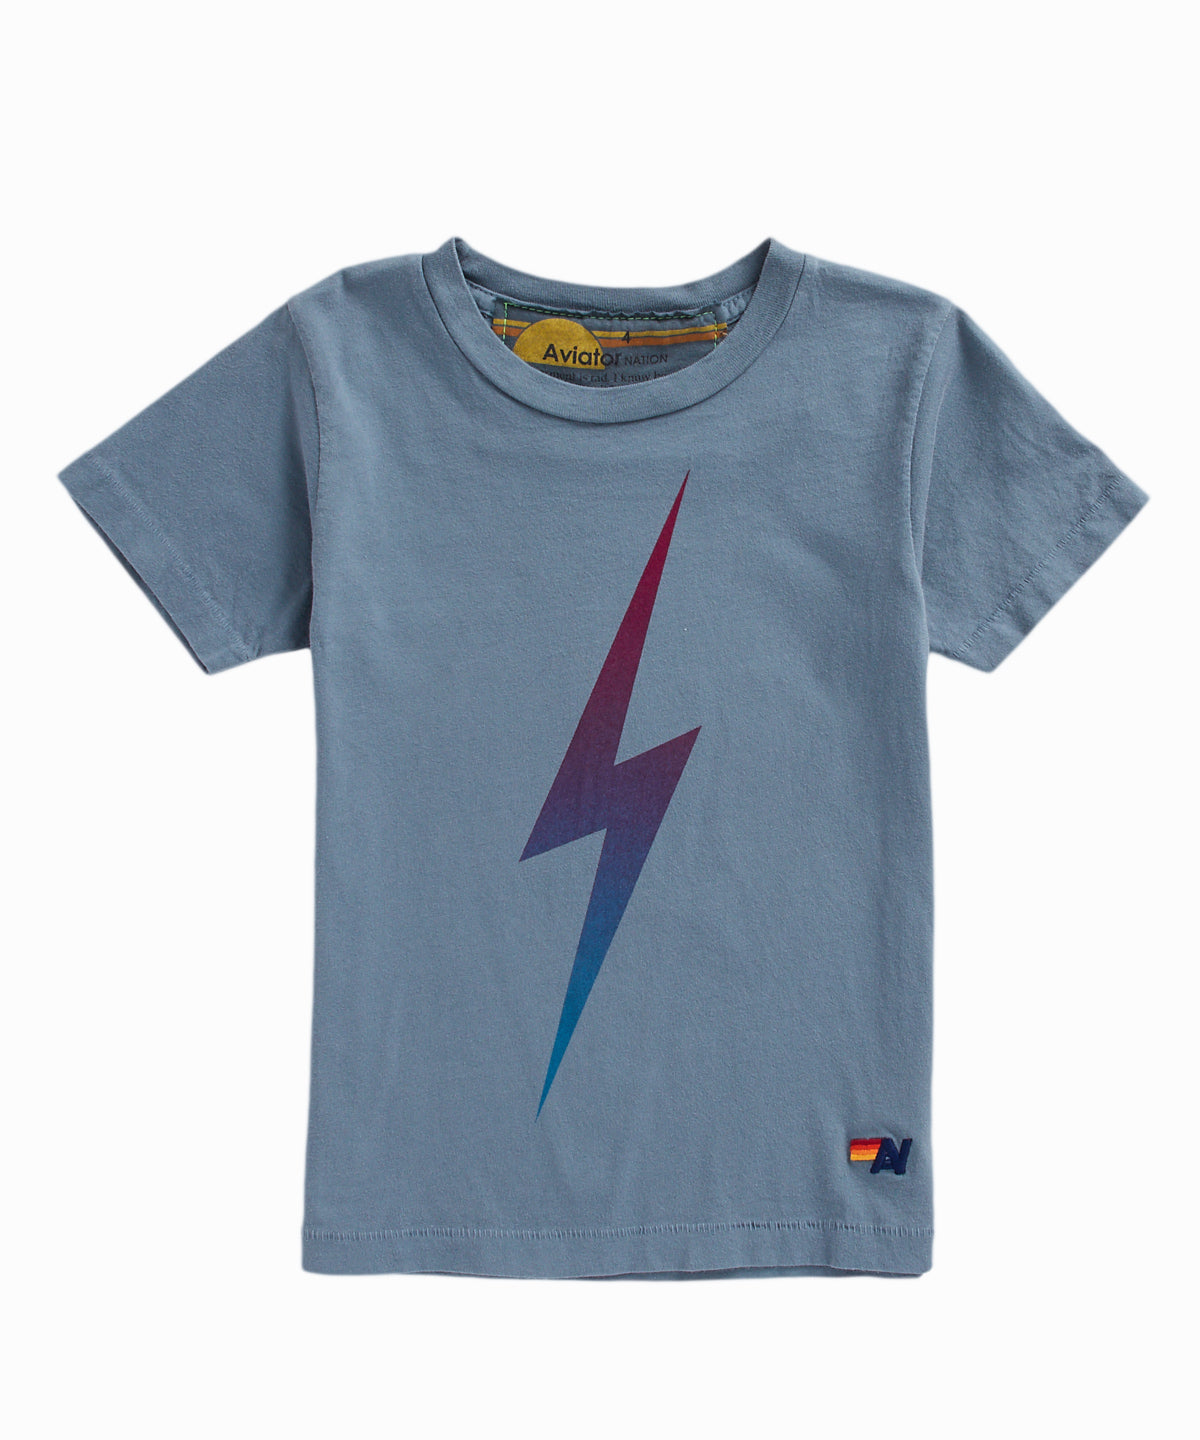 Faded Bolt Grey Tee